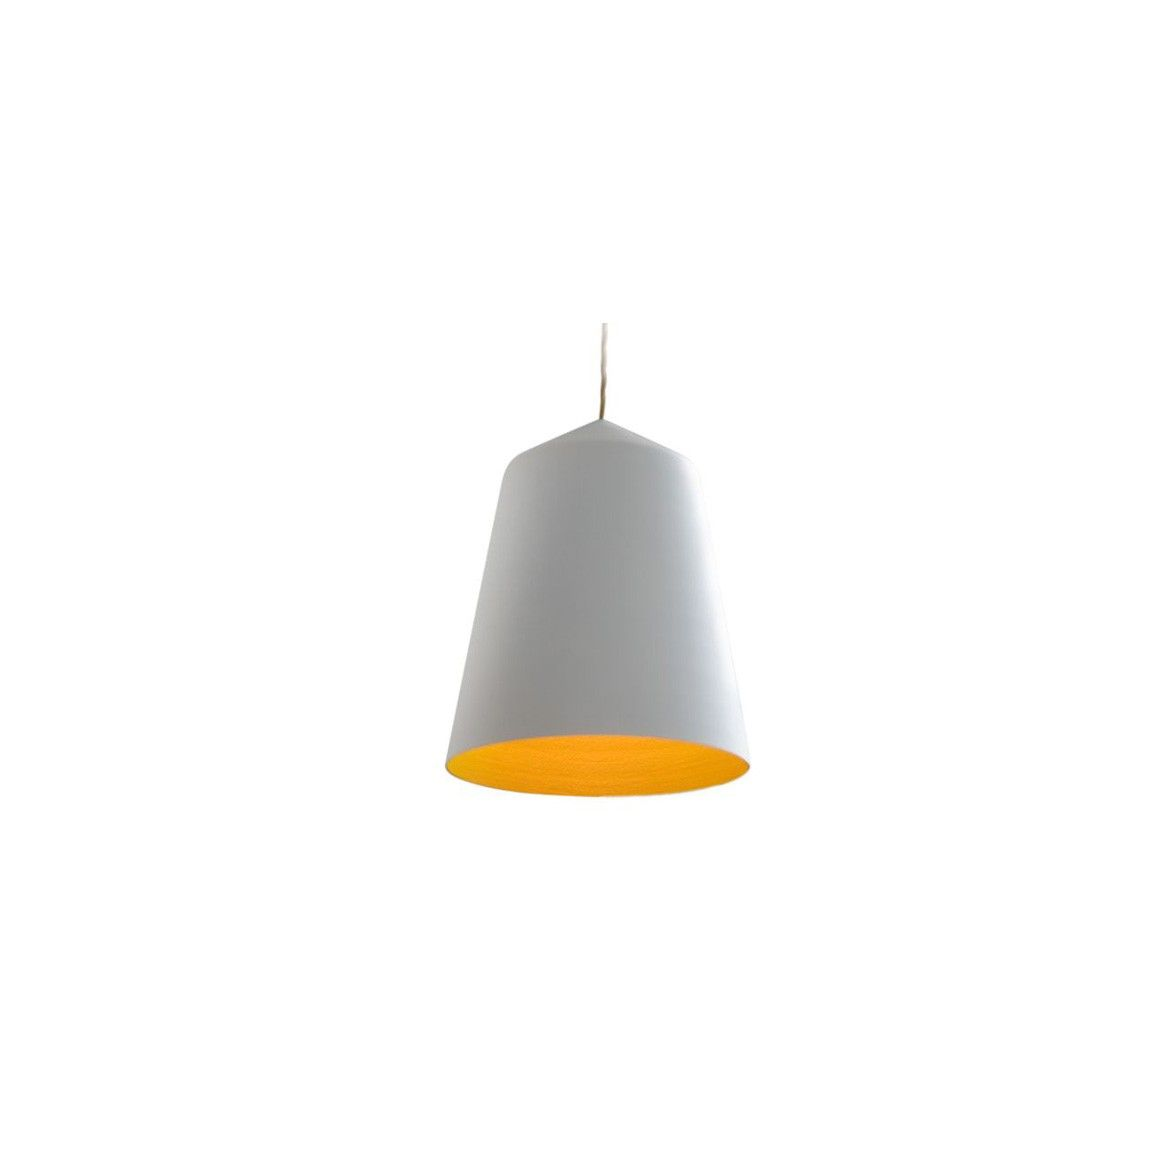 Circus pendant small kitchen lighting ideas pinterest buy pendant lights online now from aria independent contemporary furniture and lighting store in islington london official stockist of flos foscarini aloadofball Image collections